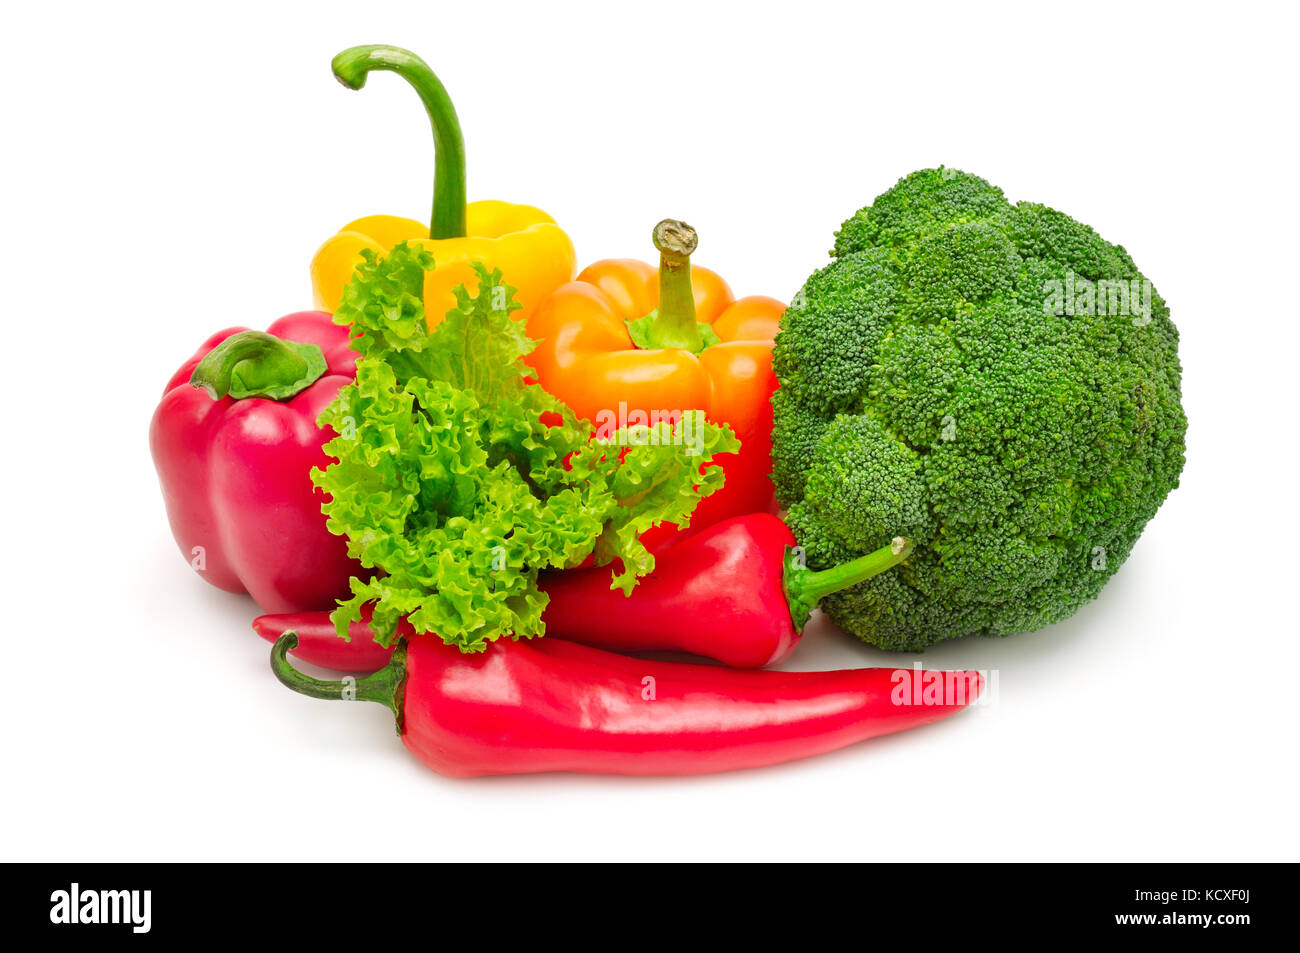 Légumes frais collection isolated on white Photo Stock